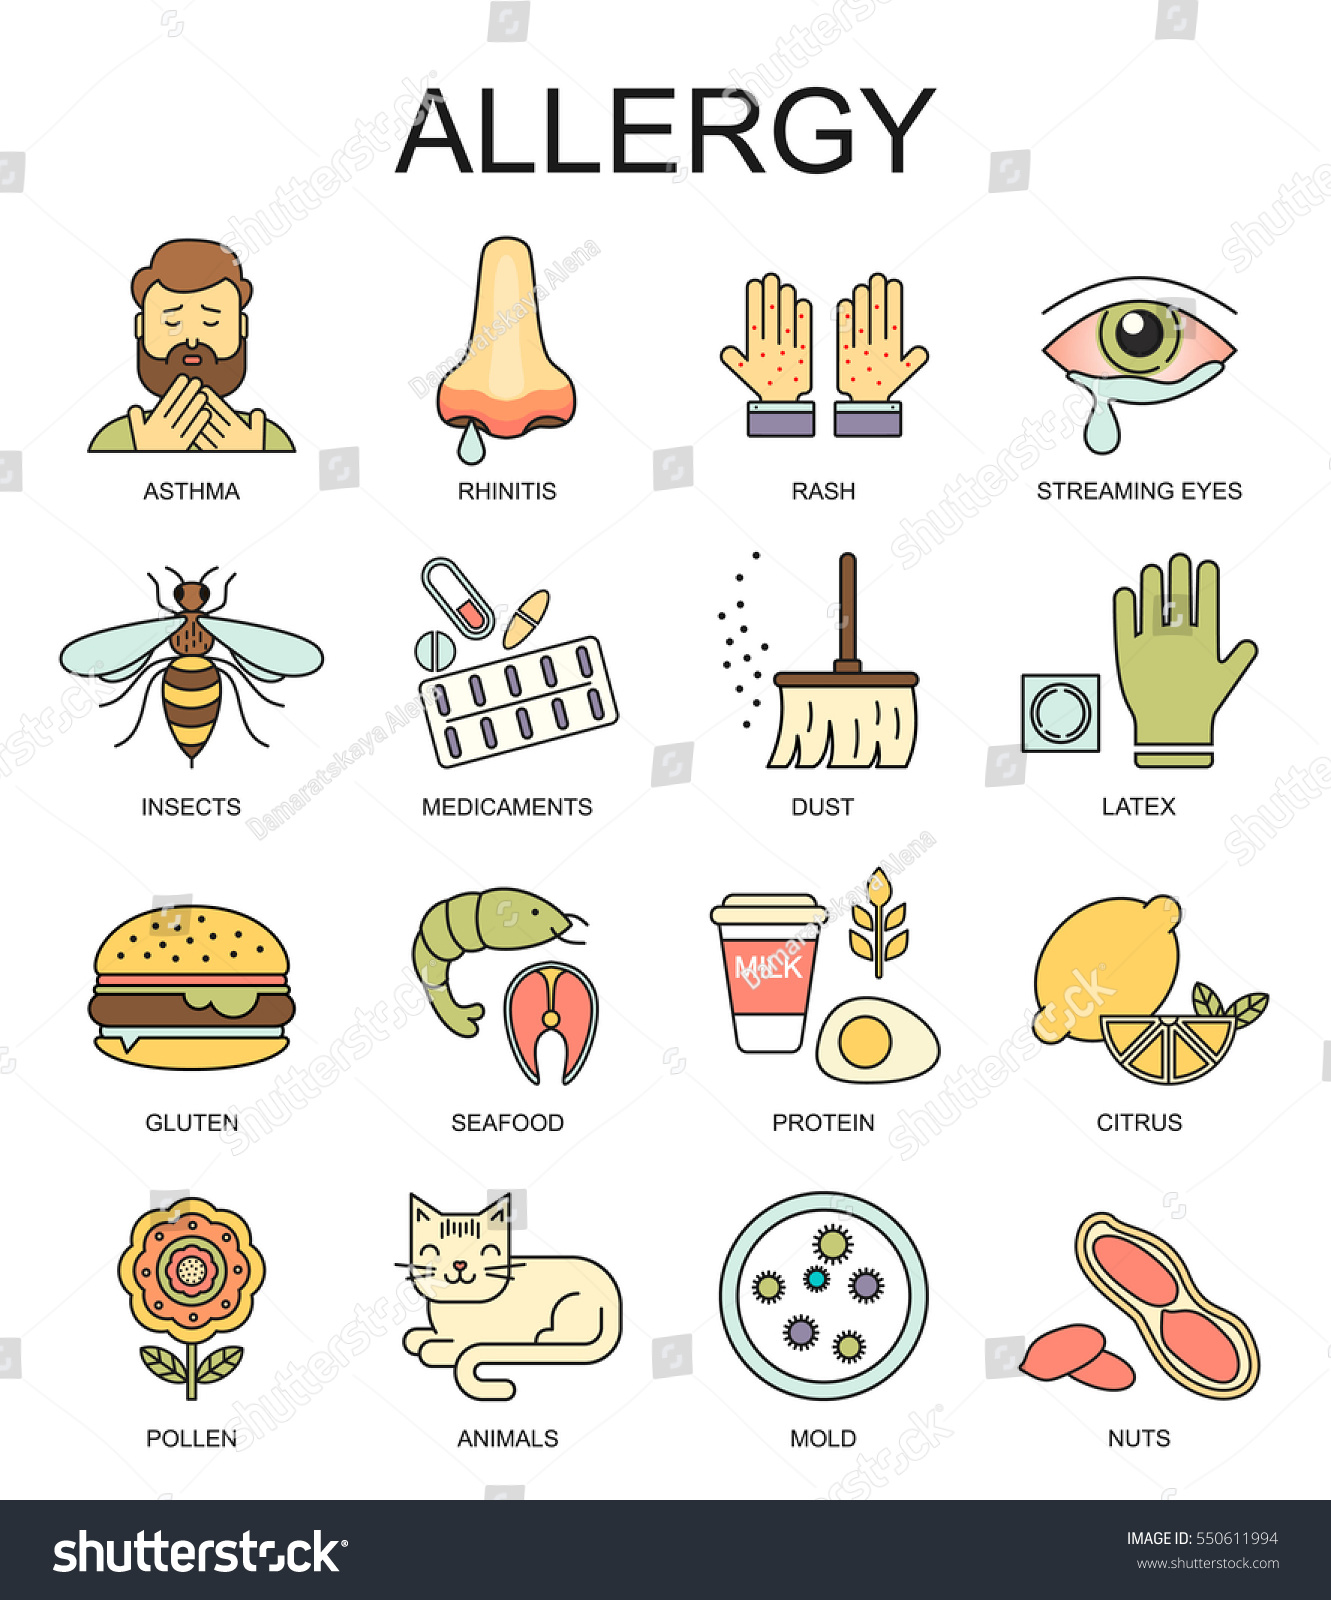 Allergy Symptoms Vector Linear Illustration Most Stock Vector ...